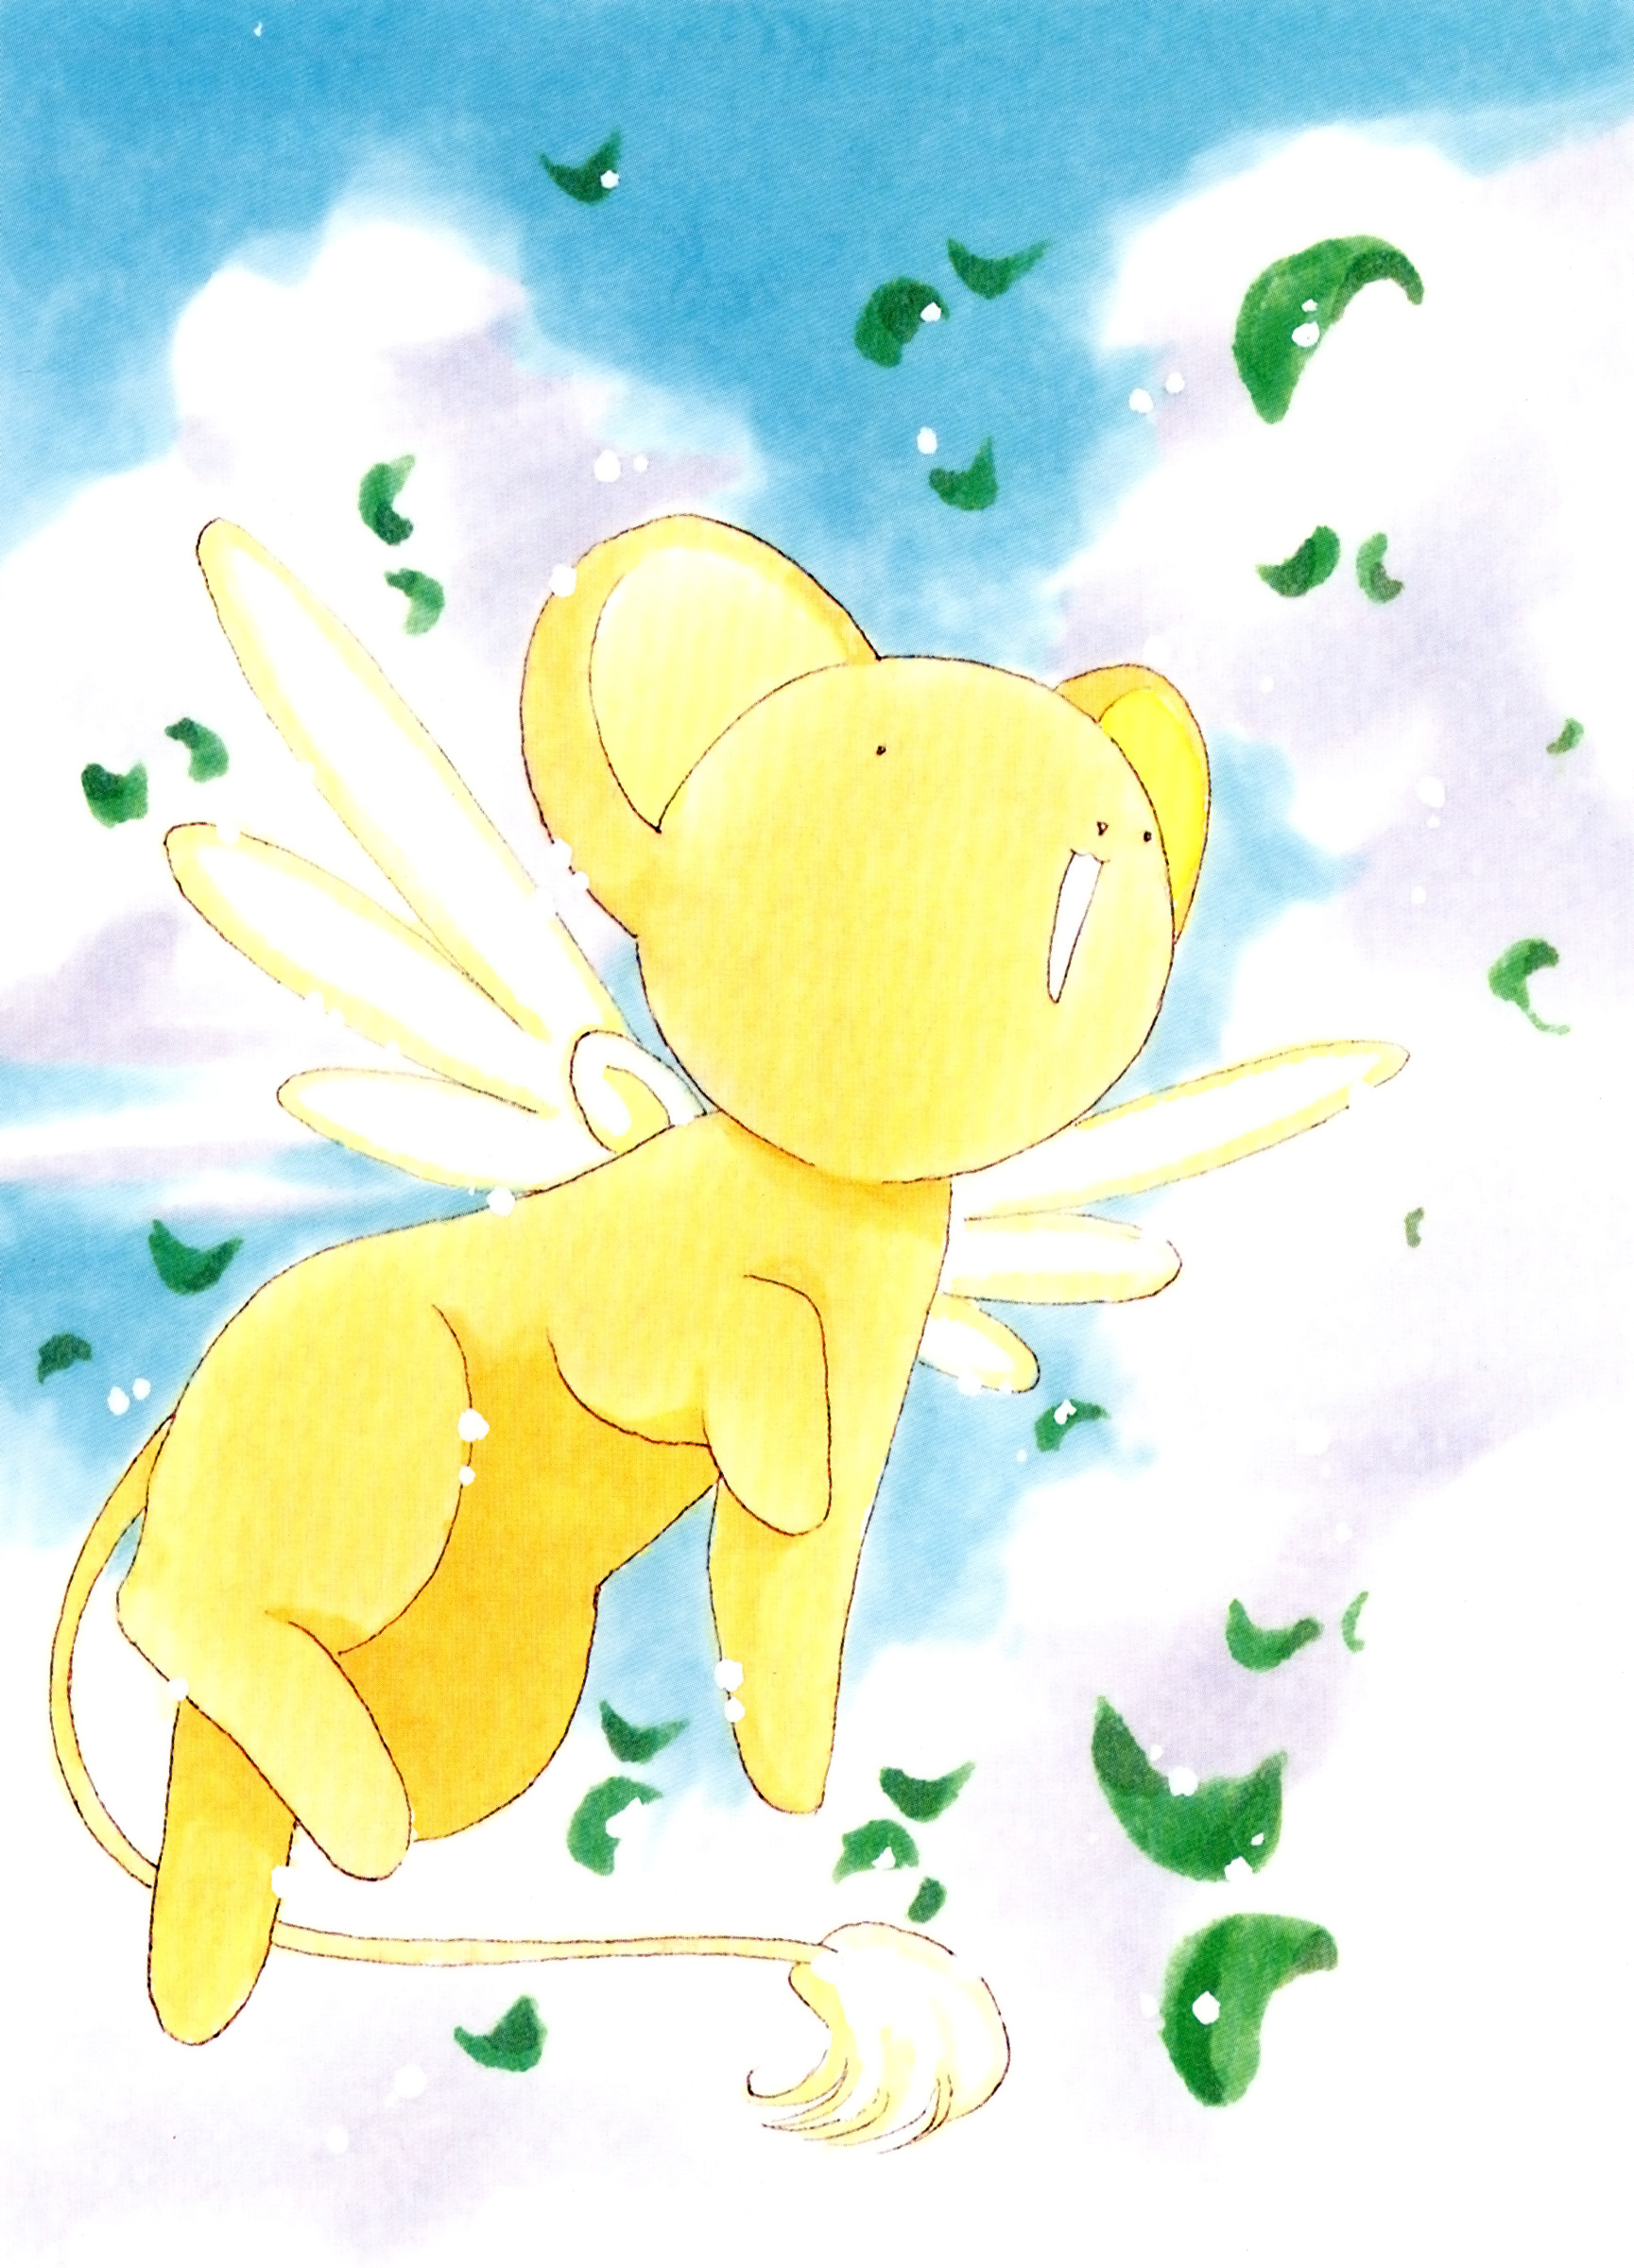 kero chan wallpaper - photo #4